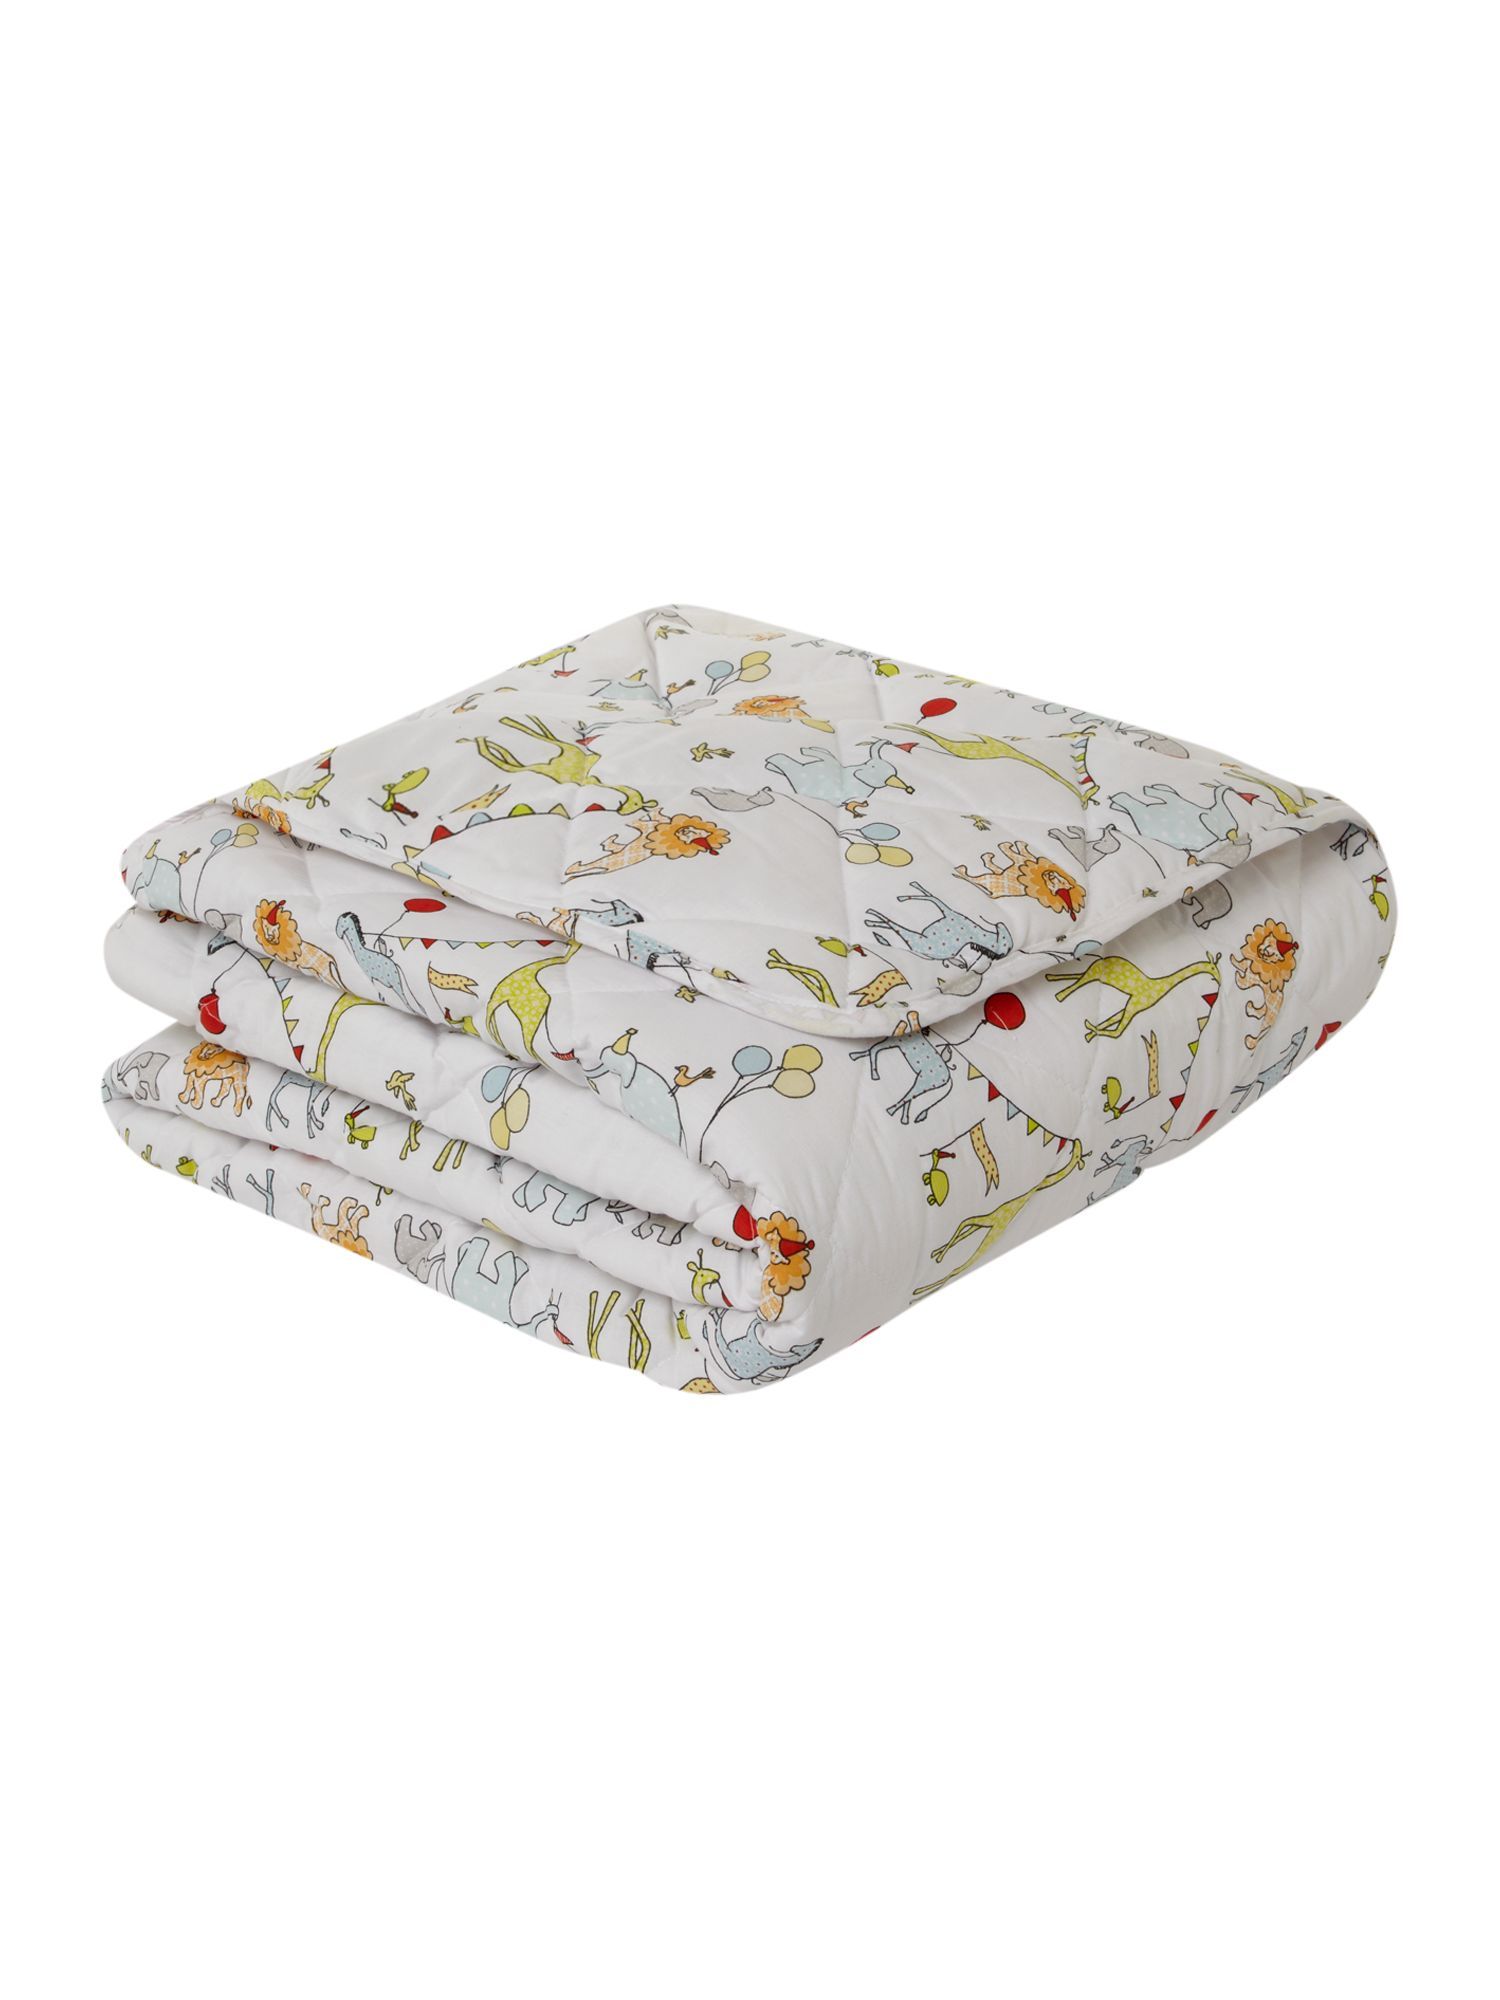 Circus Parade bed throw